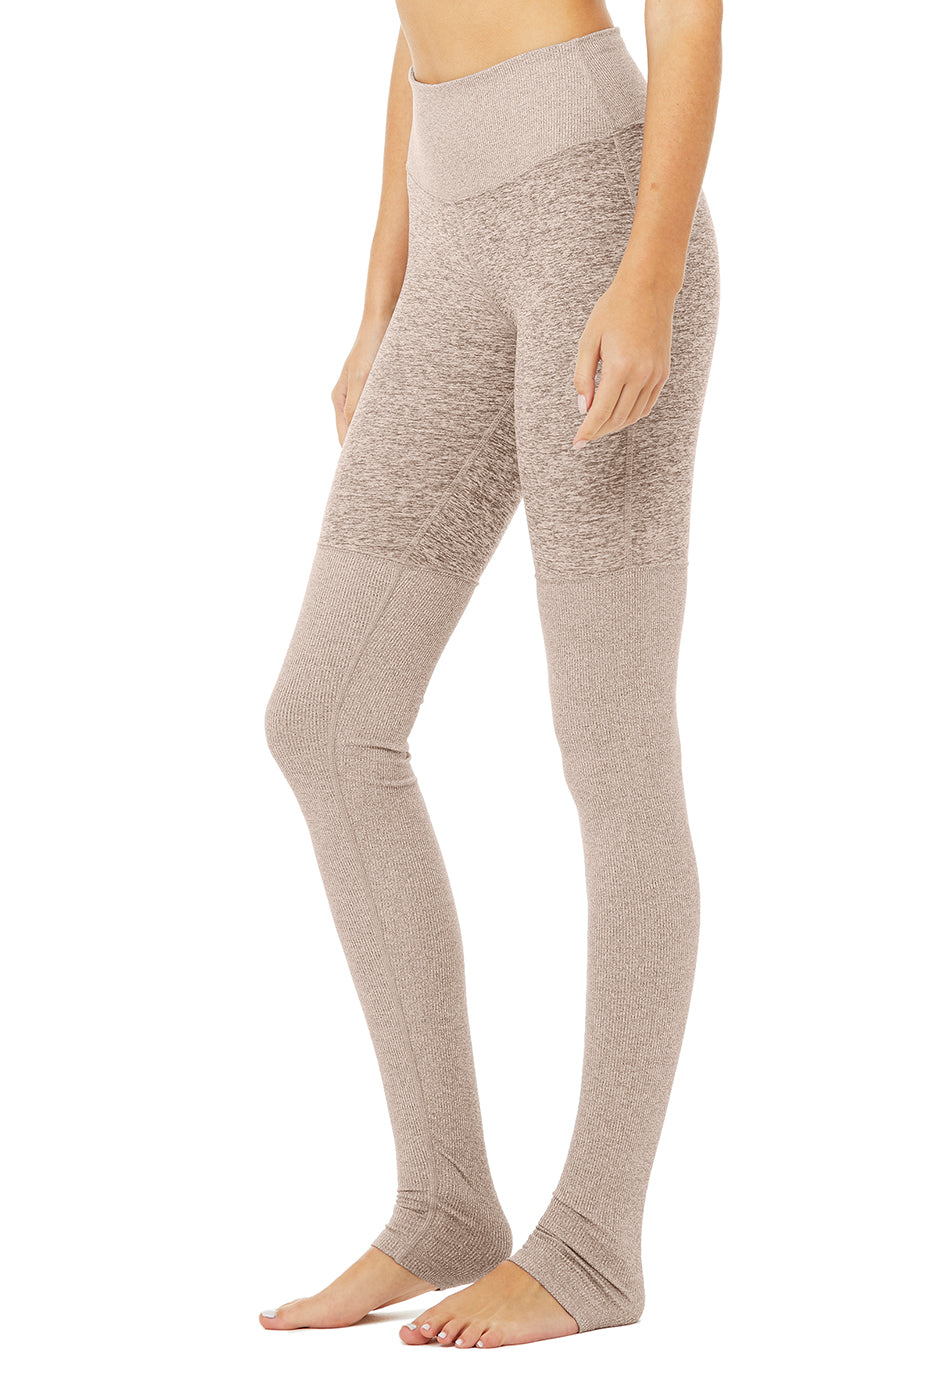 High-Waist Alosoft Goddess Legging